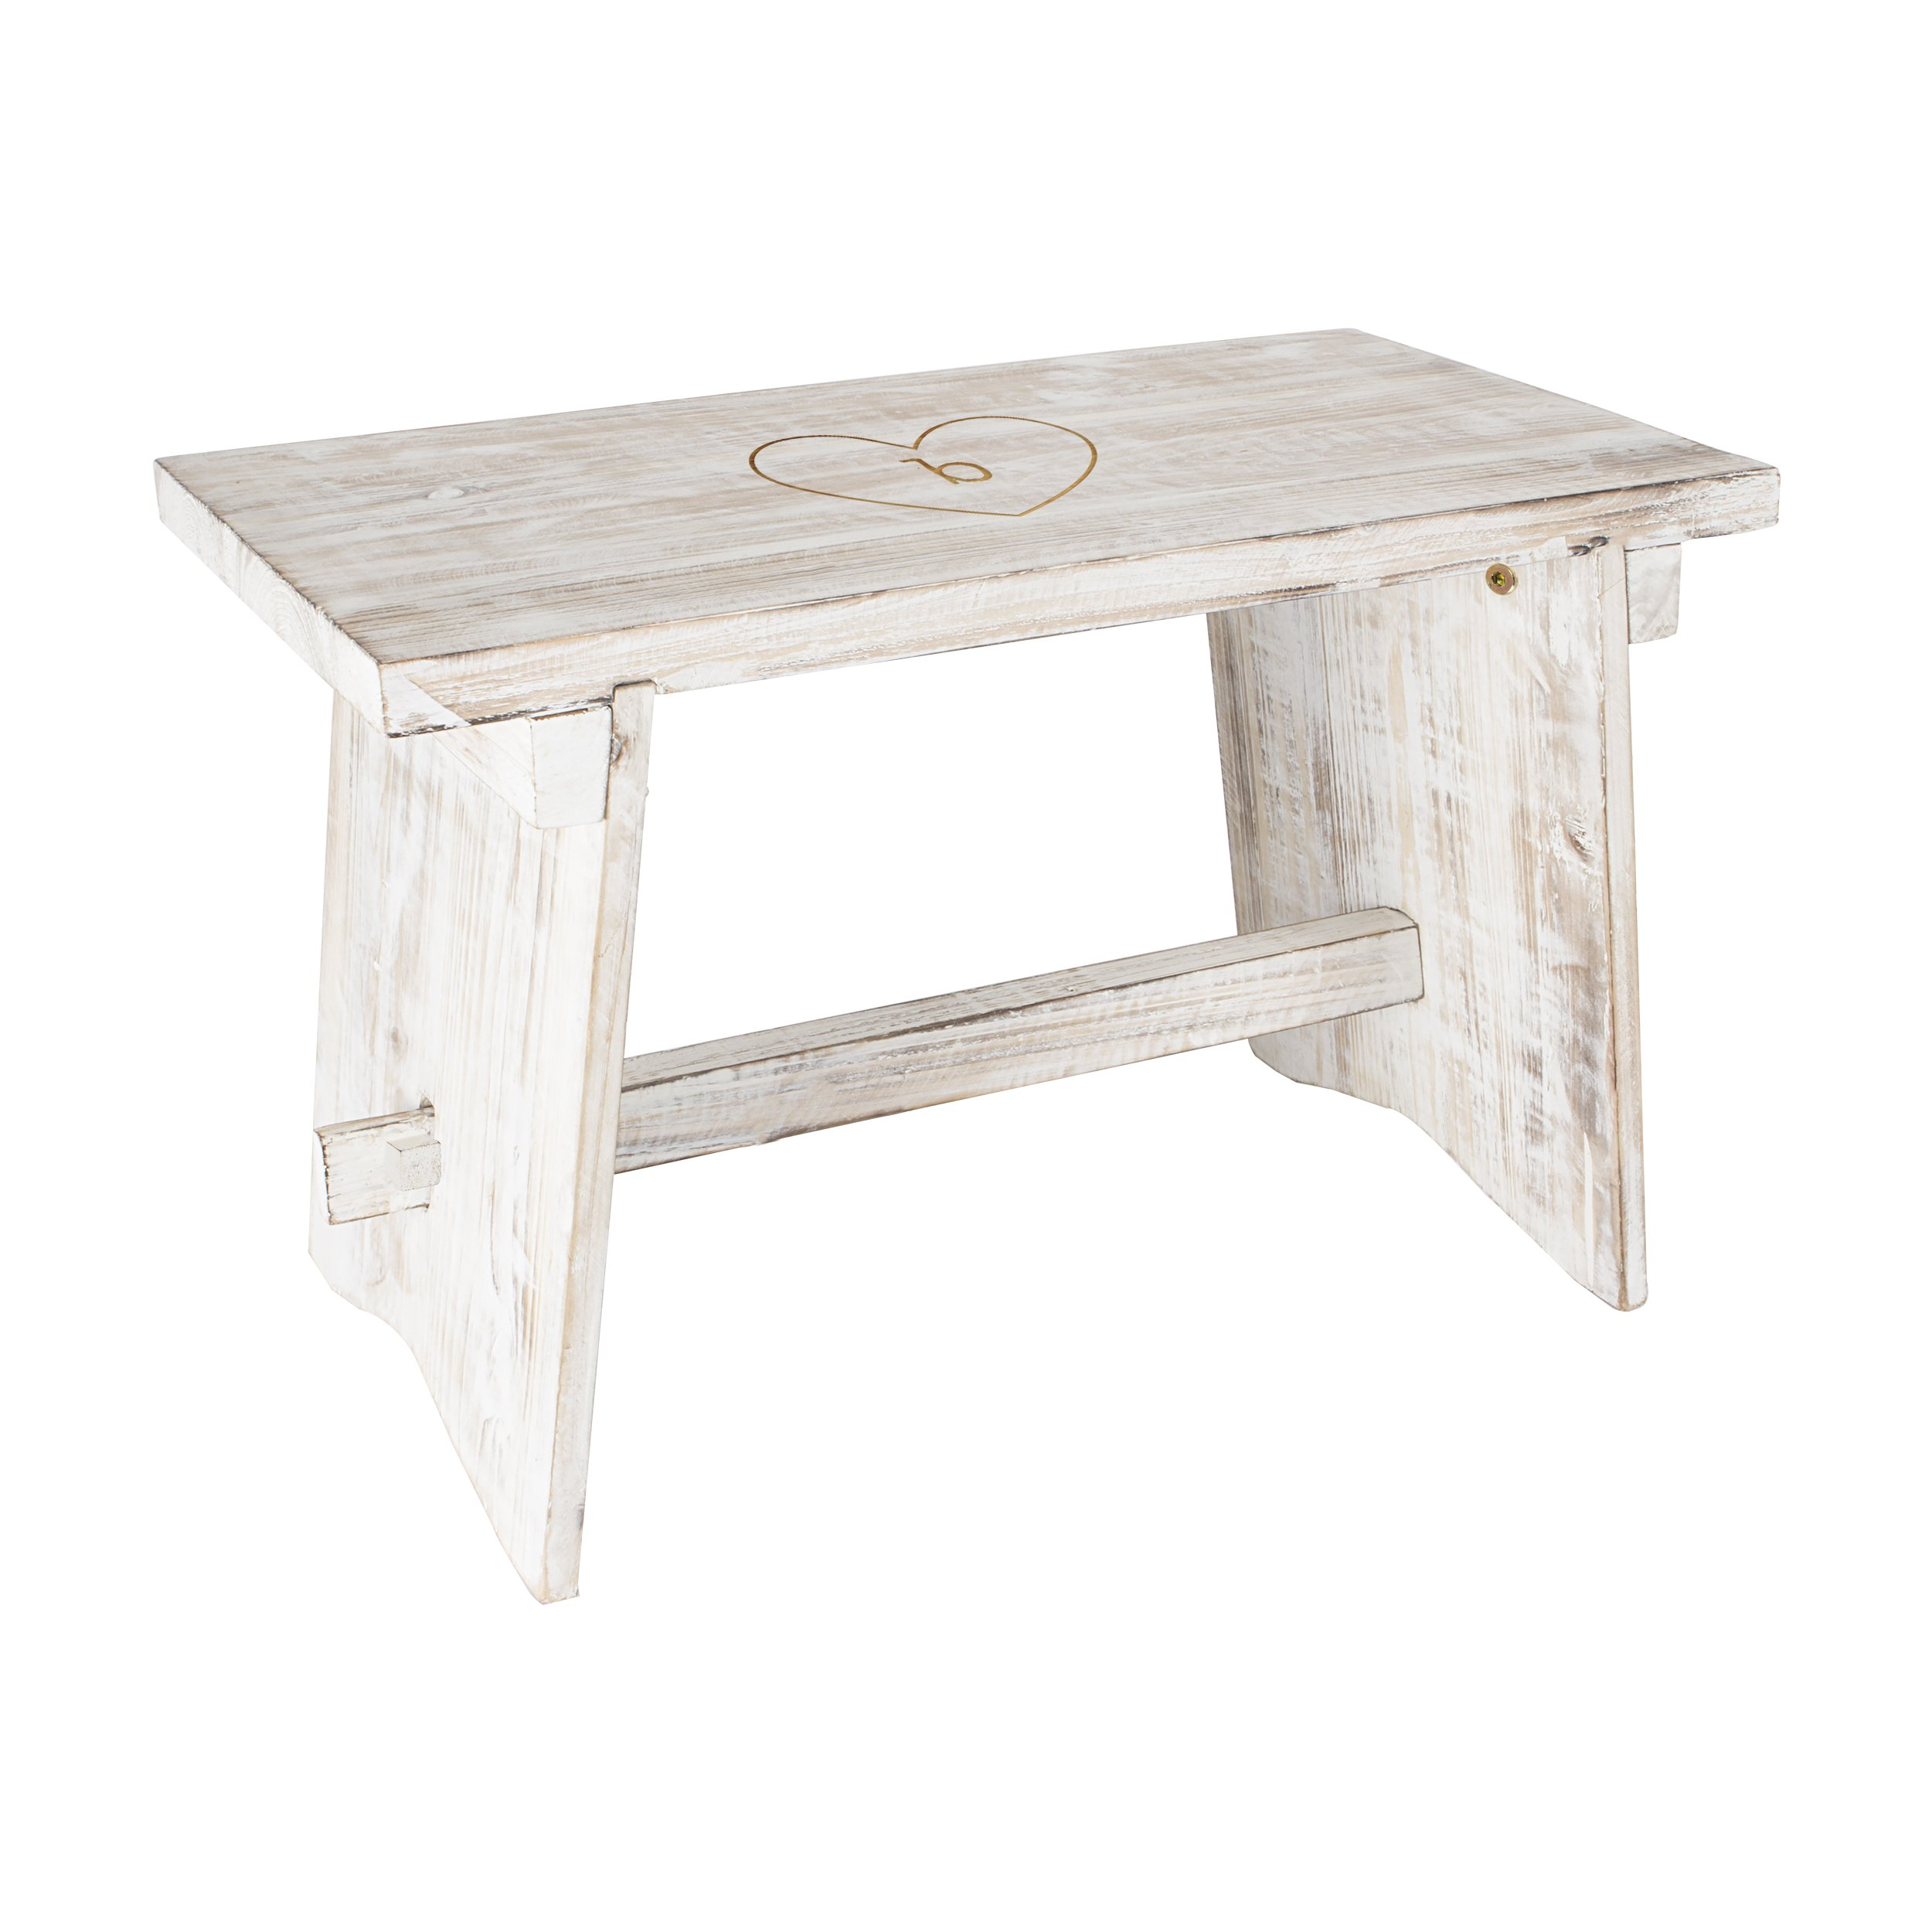 Cathy's Concepts HRT-3950-B Personalized Heart Rustic Wooden Guestbook Bench by Cathy's Concepts